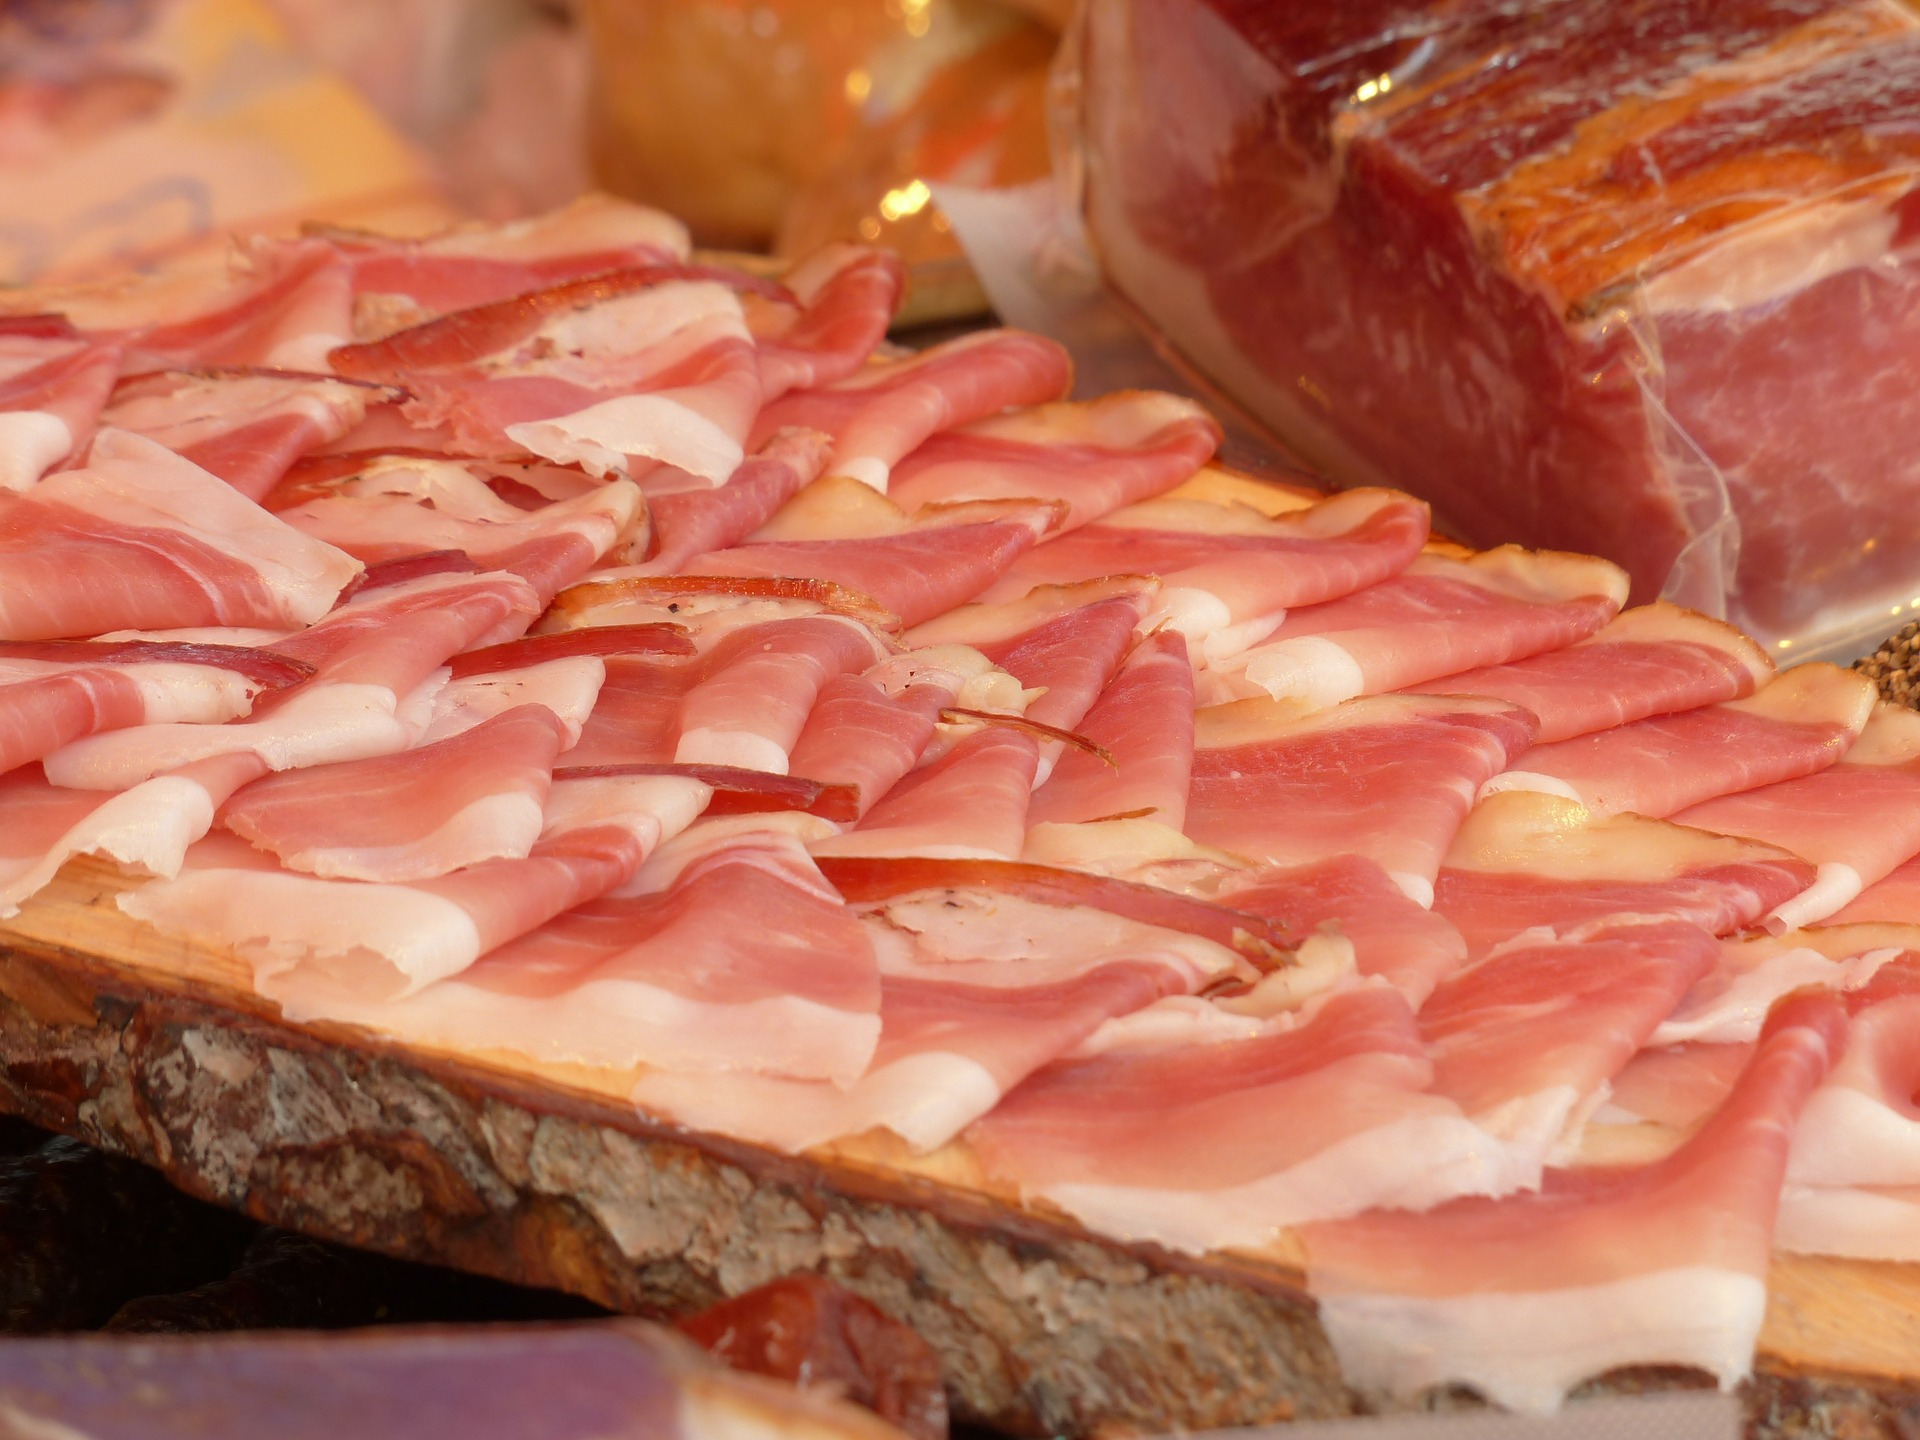 Cured hams made near our luxury hotels, Umbria